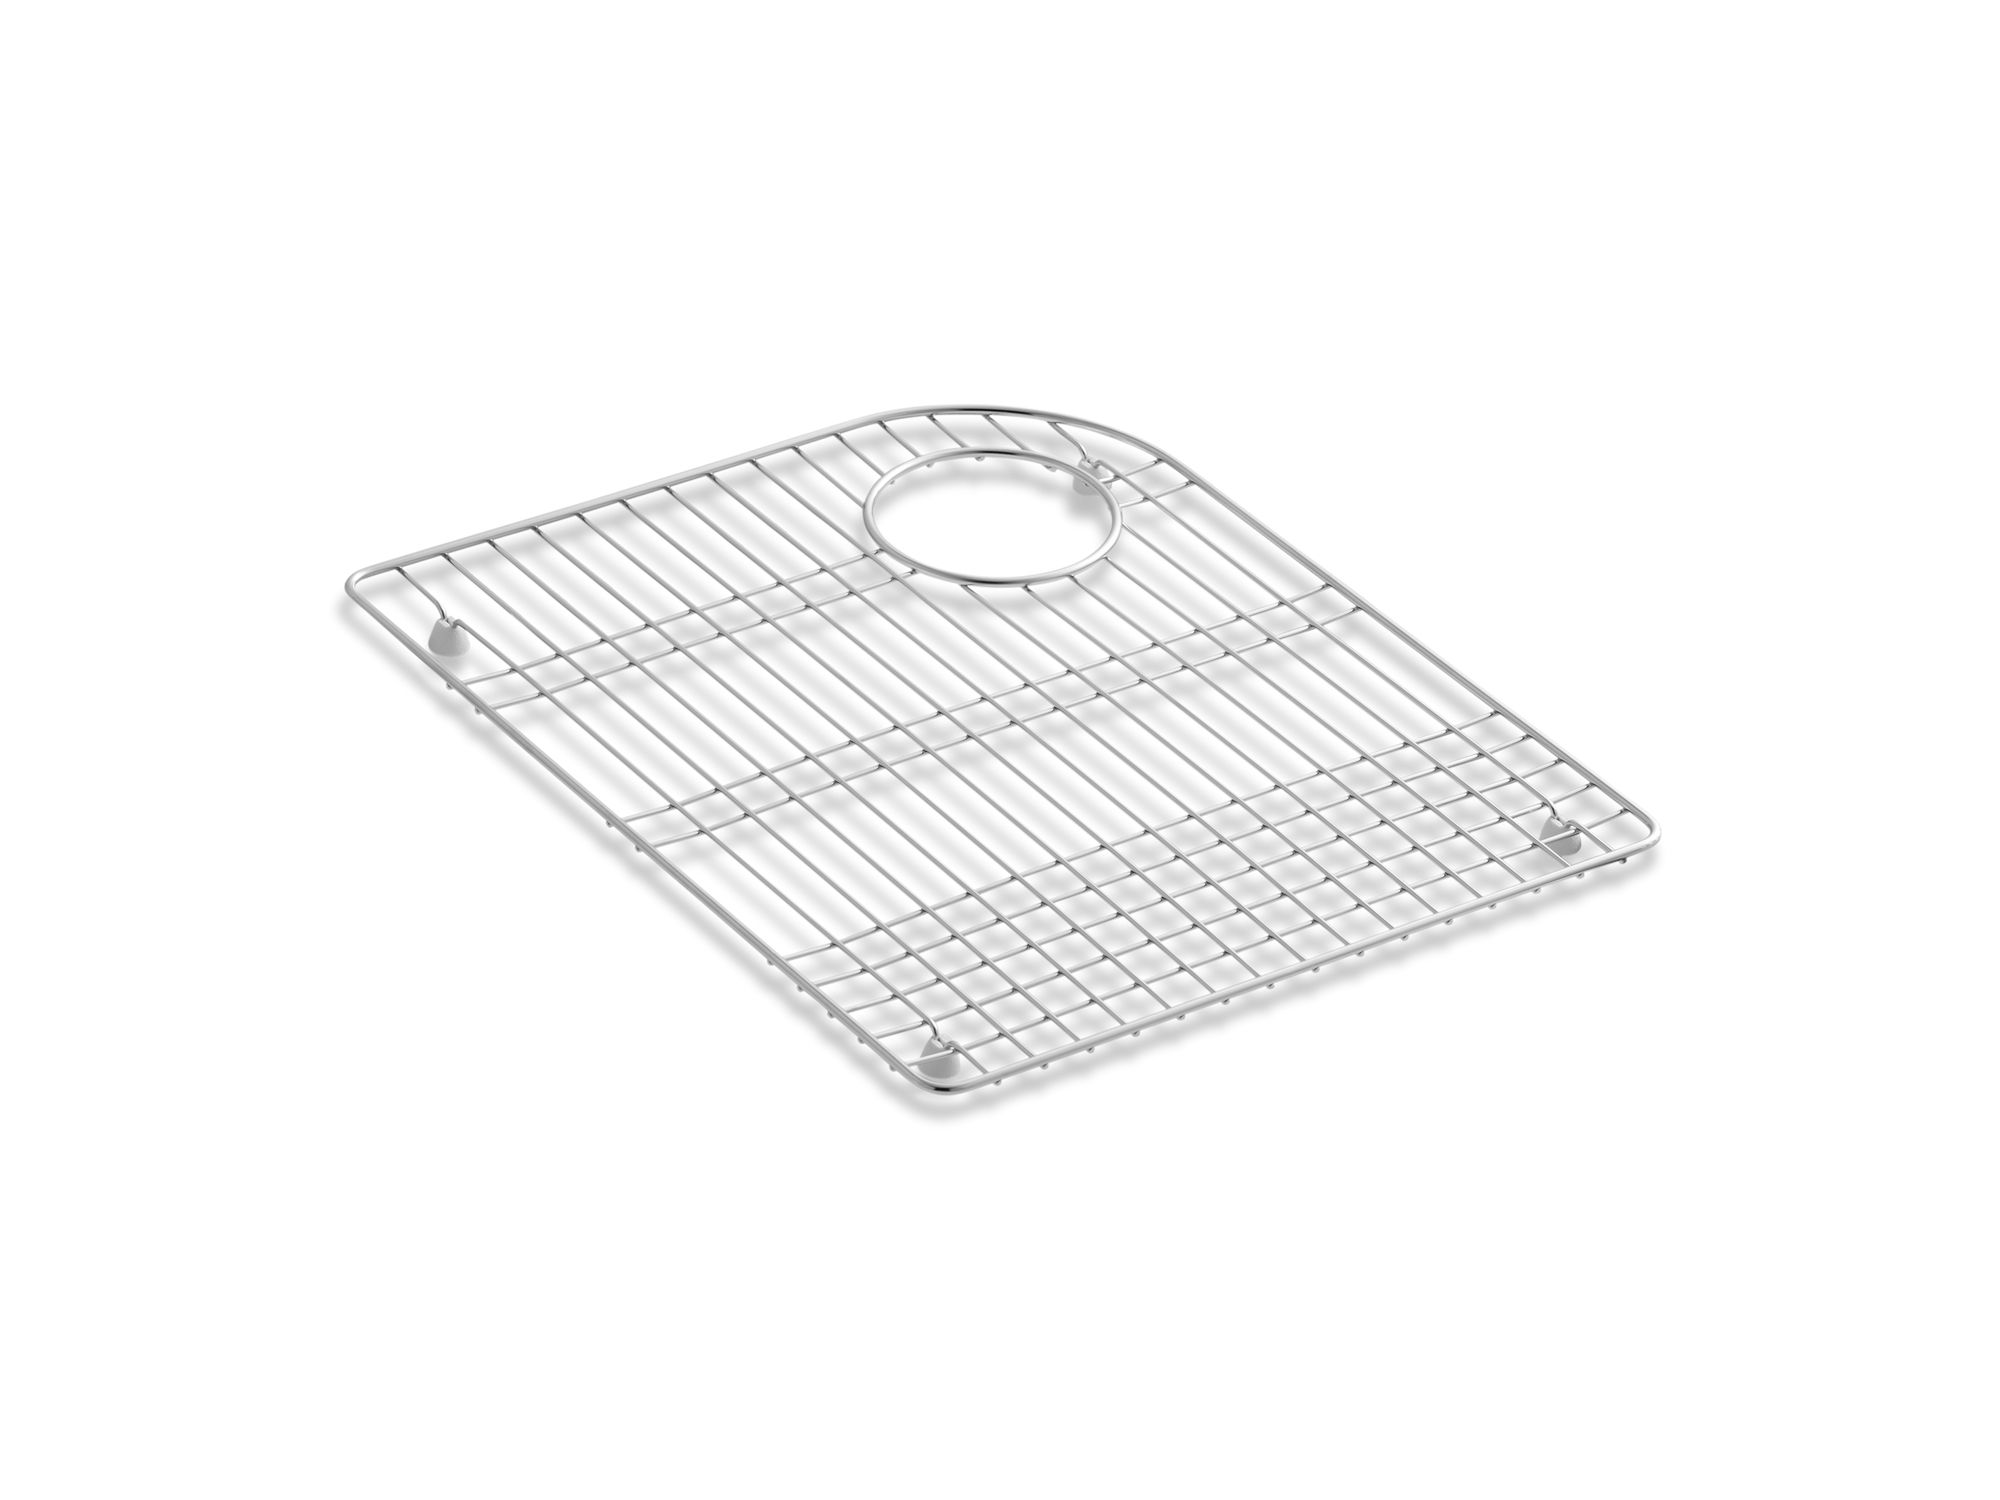 "Kohler K-6001-ST Marsala and Executive Chef Stainless Steel 18"" x 15"" Sink Rack"